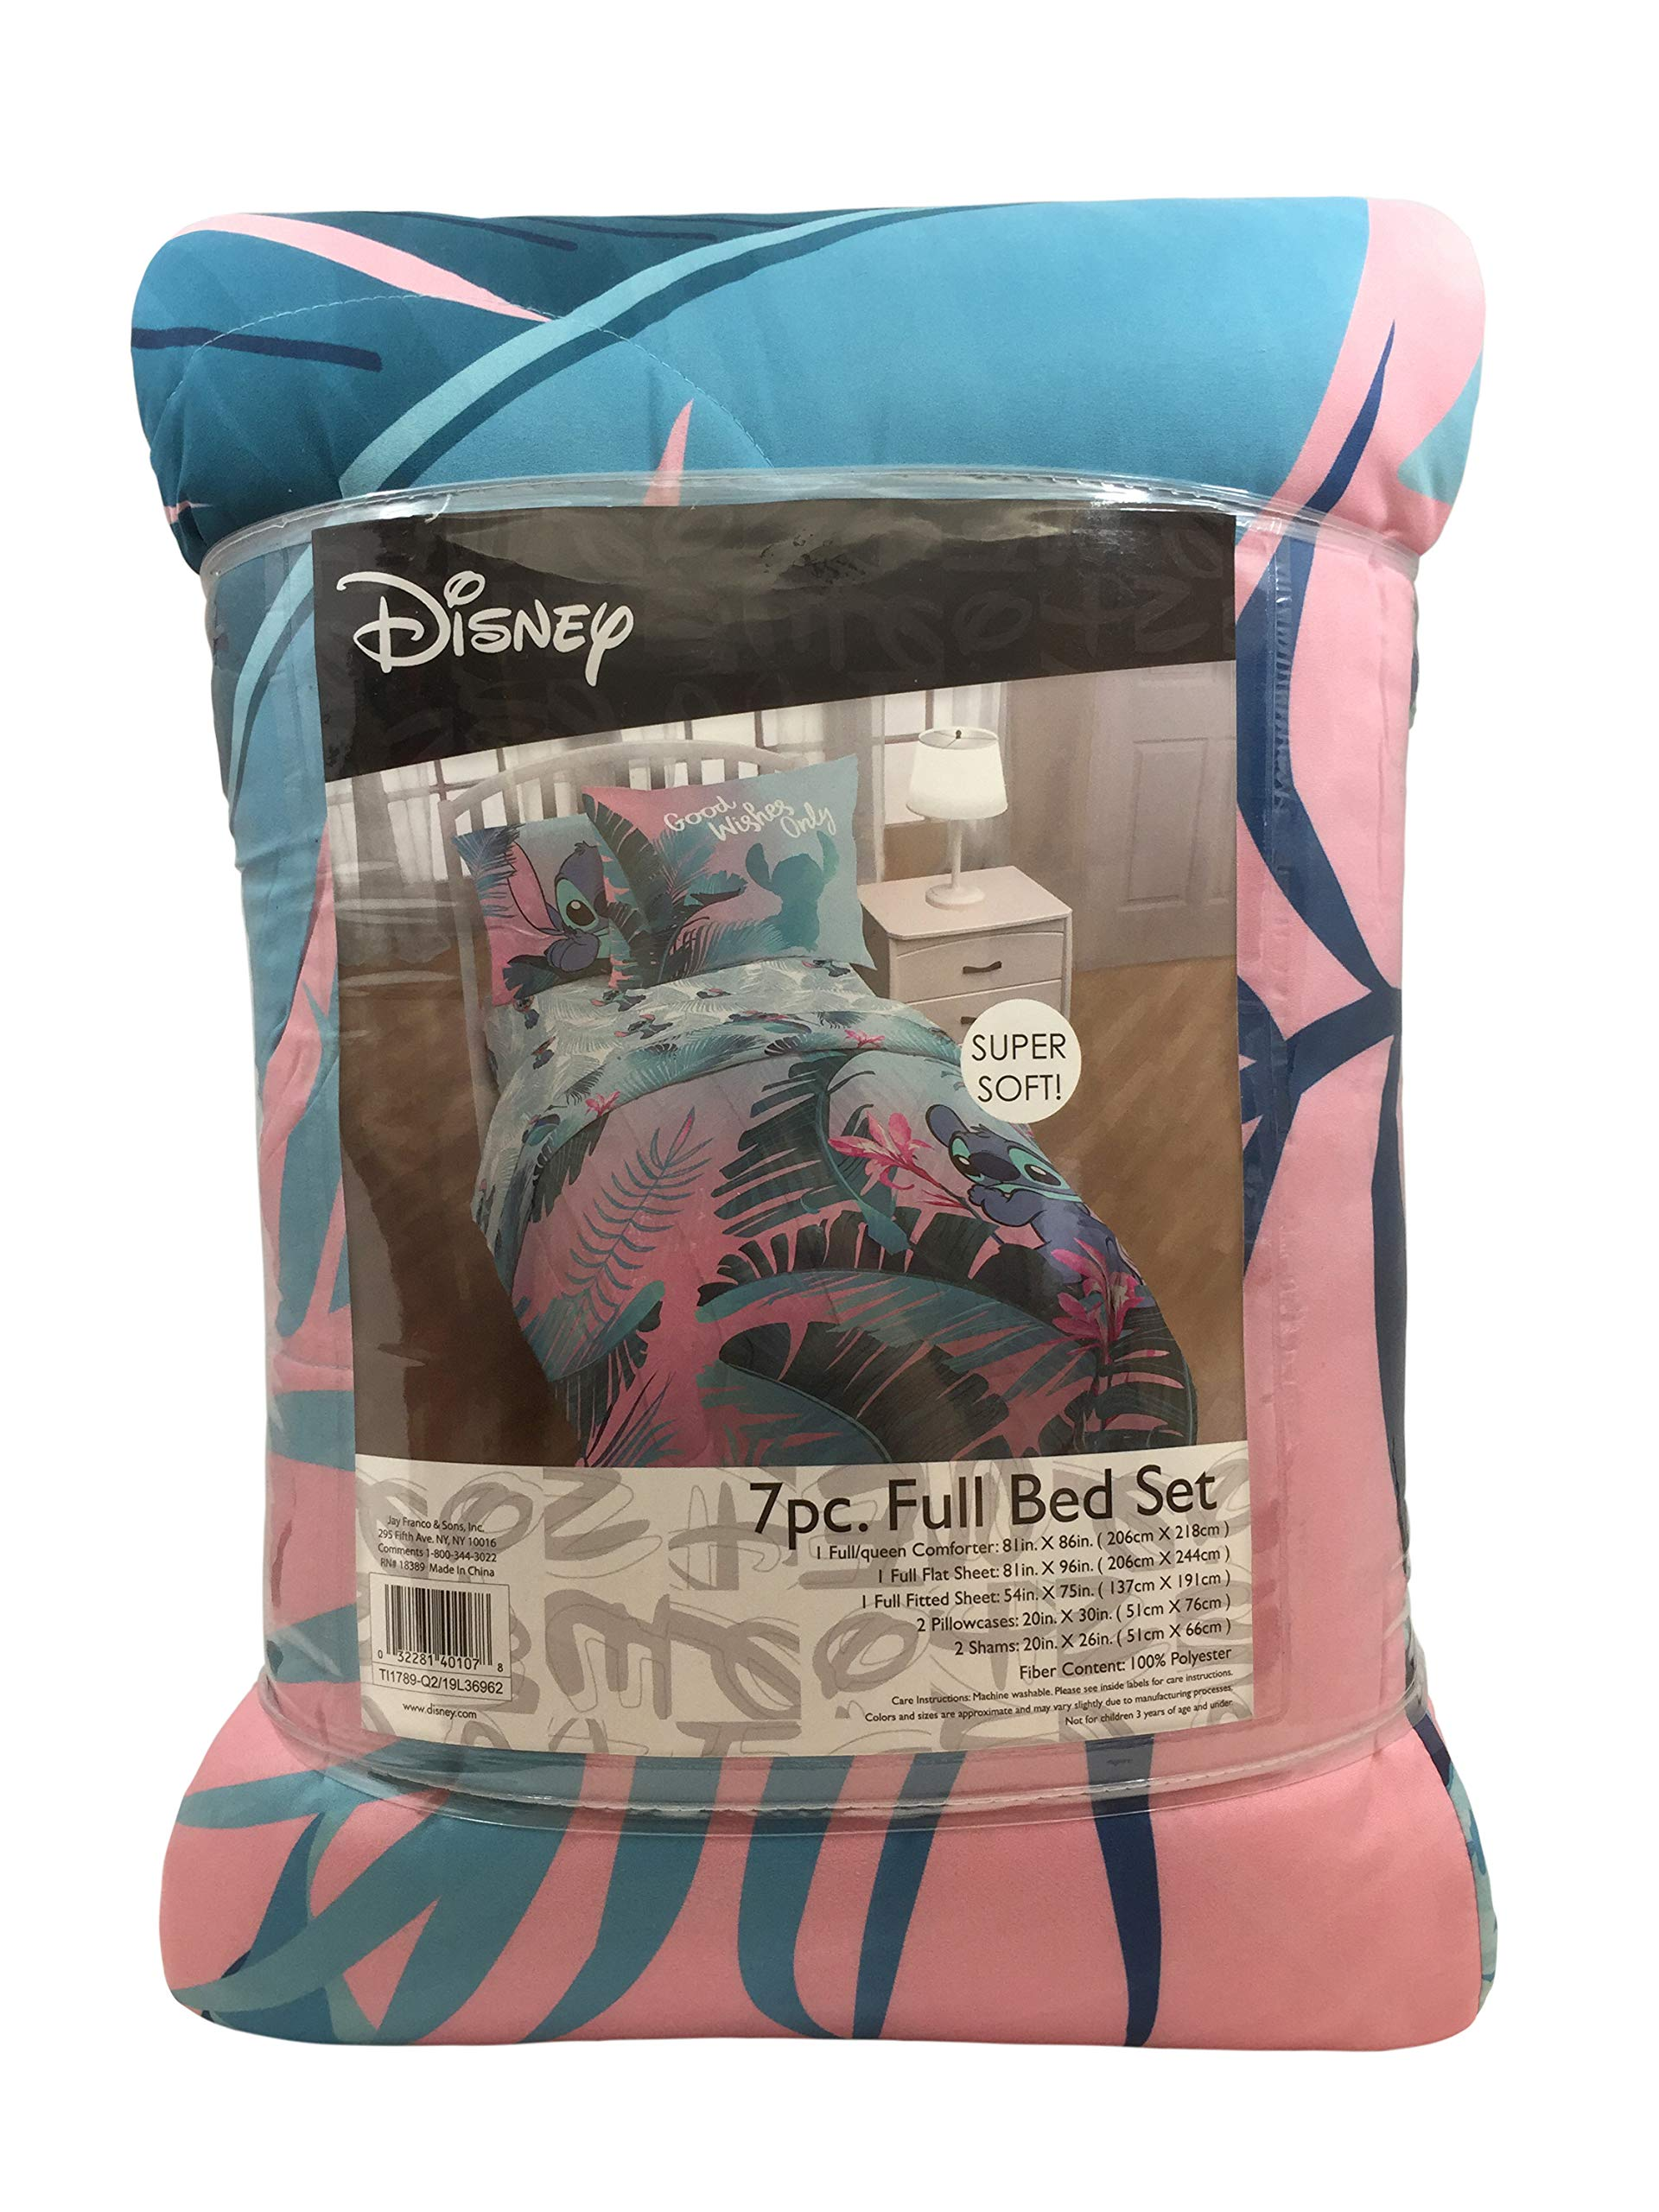 Jay Franco Disney Lilo & Stitch Floral Fun 7 Piece Full Bed Set - Includes Reversible Comforter & Sheet Set Bedding - Super Soft Fade Resistant Microfiber - (Official Disney Product) by Jay Franco (Image #2)